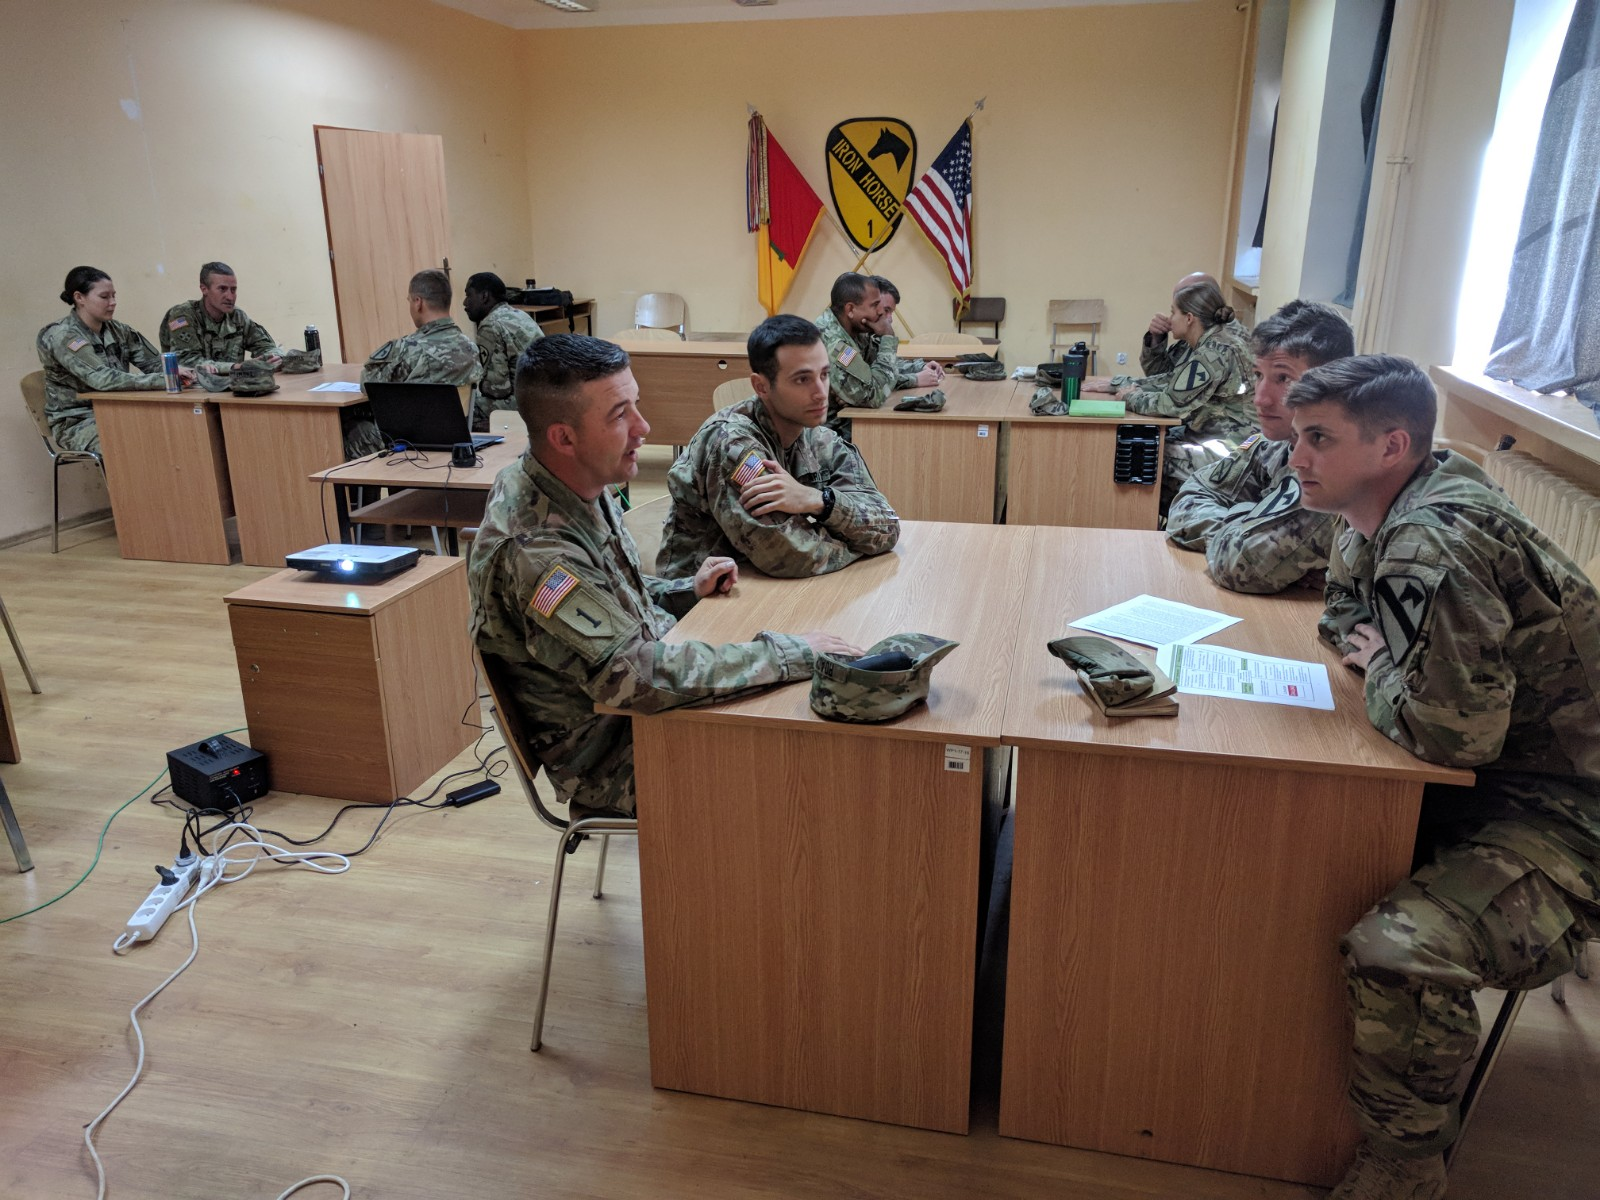 Officers and NCOs from the 1st Armored Brigade Combat Team, 1st Cavalry Division, discuss the challenges when strong-willed leaders clash at the platoon and company level.